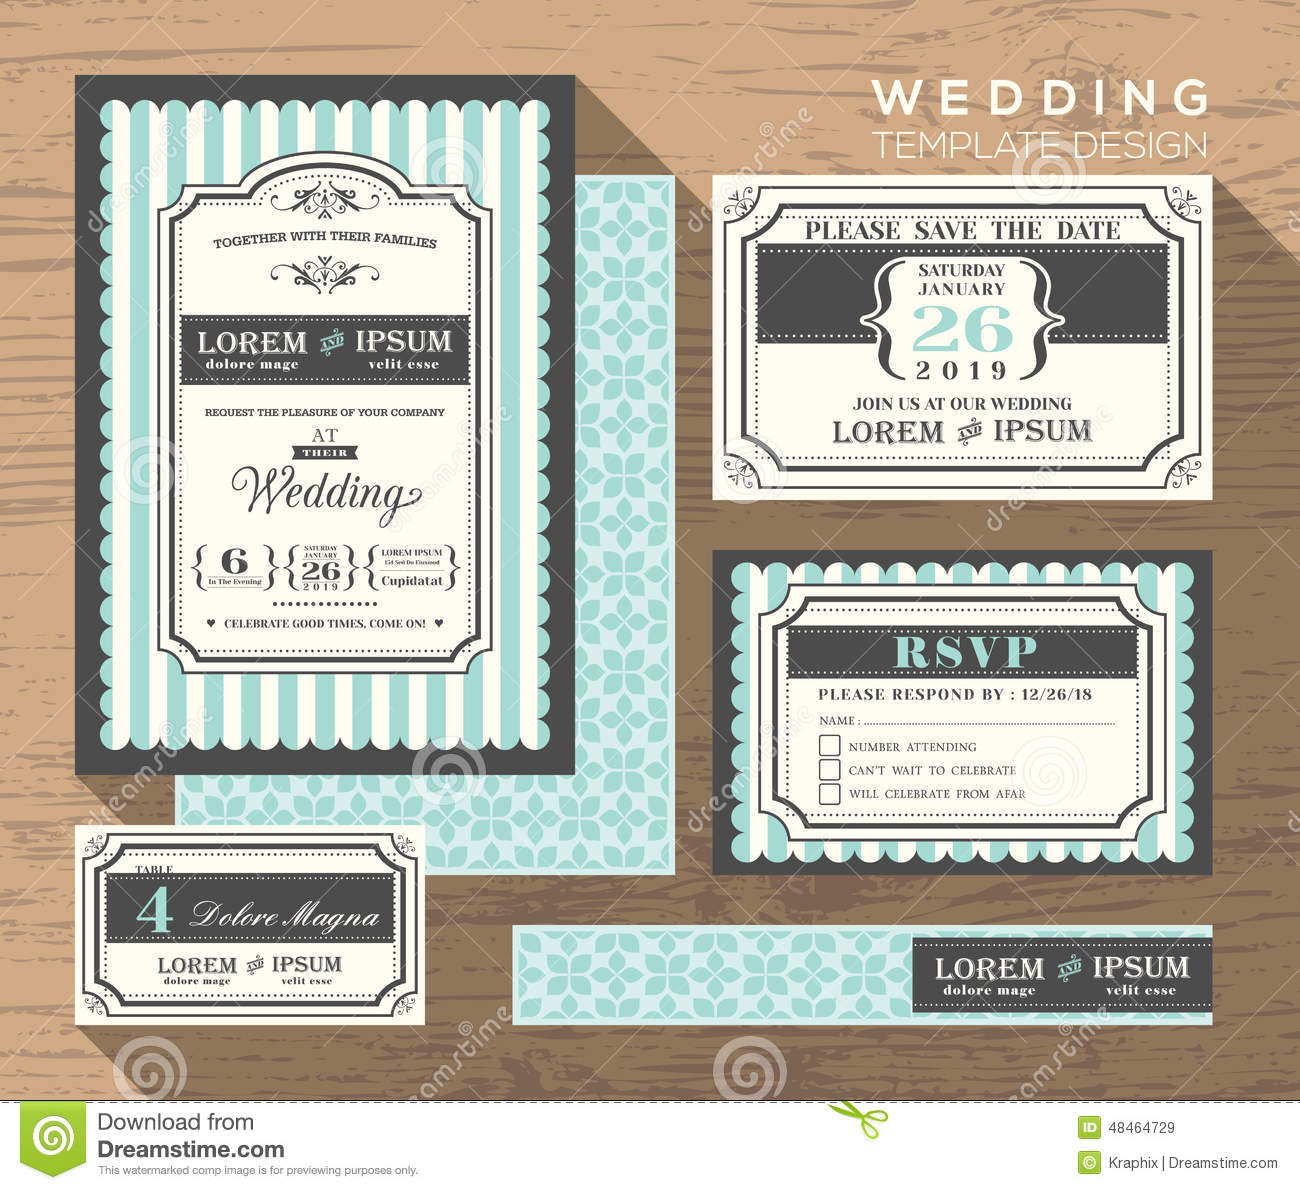 Card Date Design Invitation Place Response Save Set Template Vector Wedding  ...